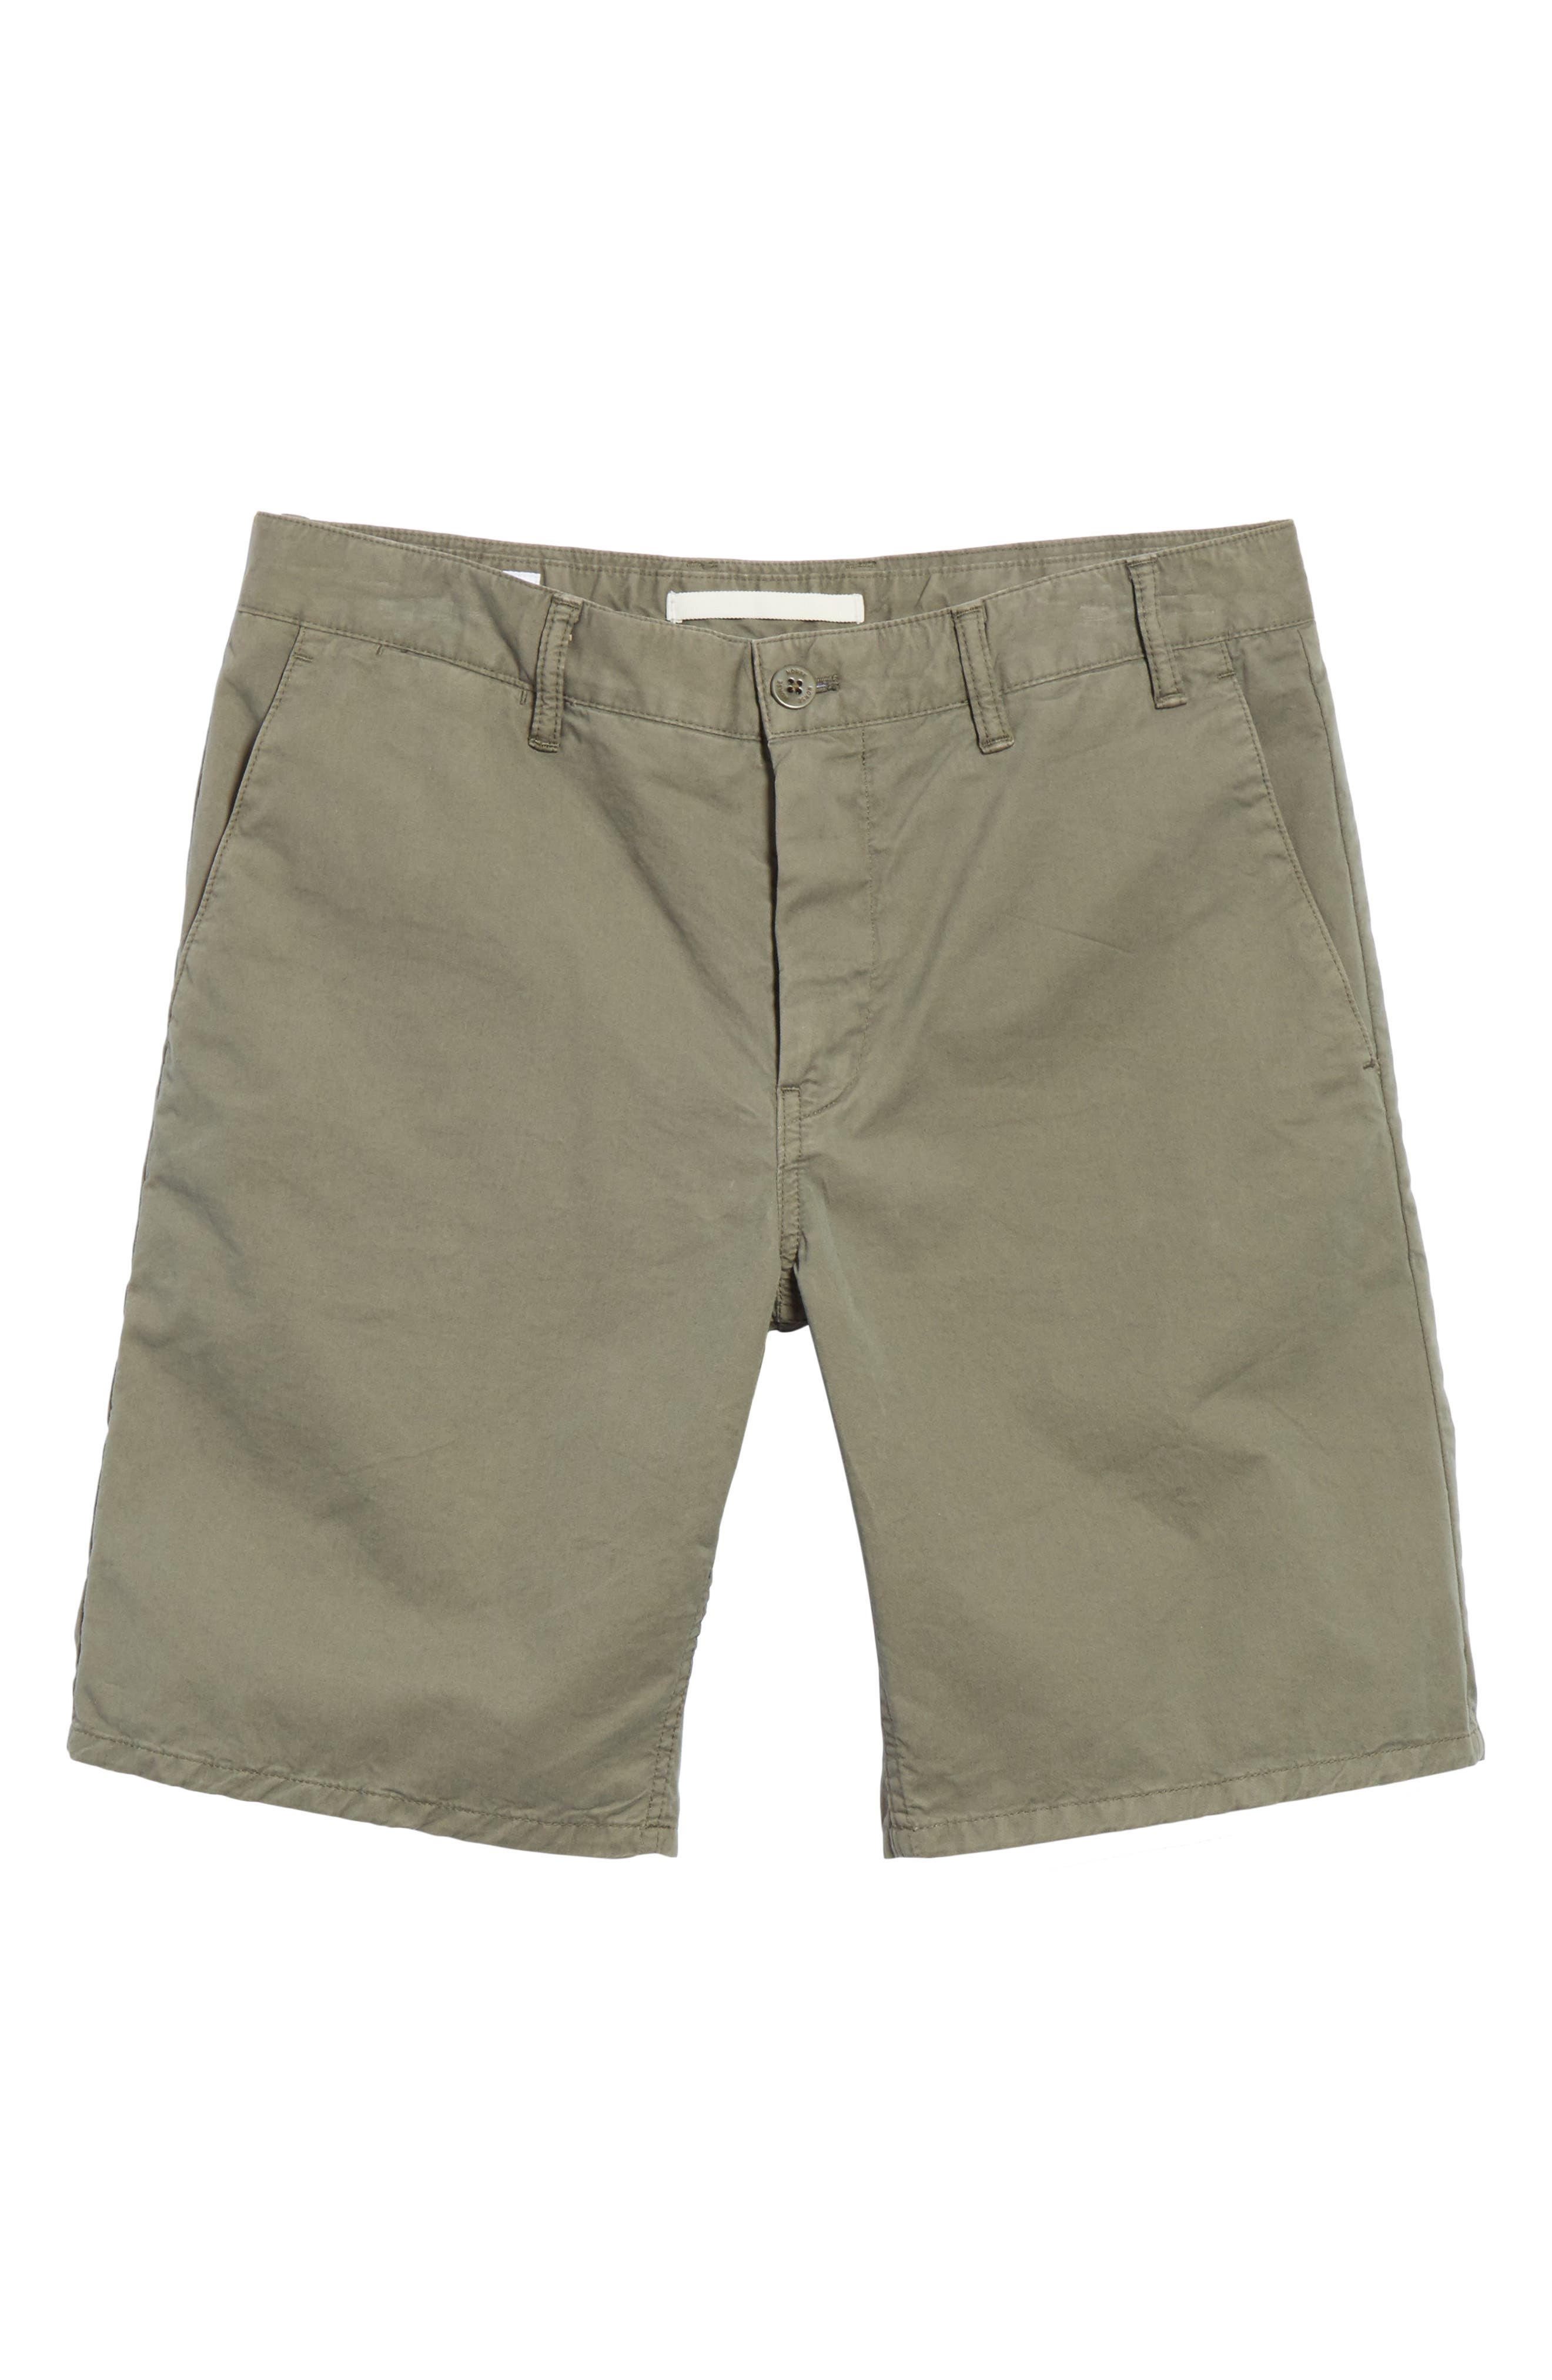 NORSE PROJECTS,                             Aros Twill Shorts,                             Alternate thumbnail 6, color,                             301